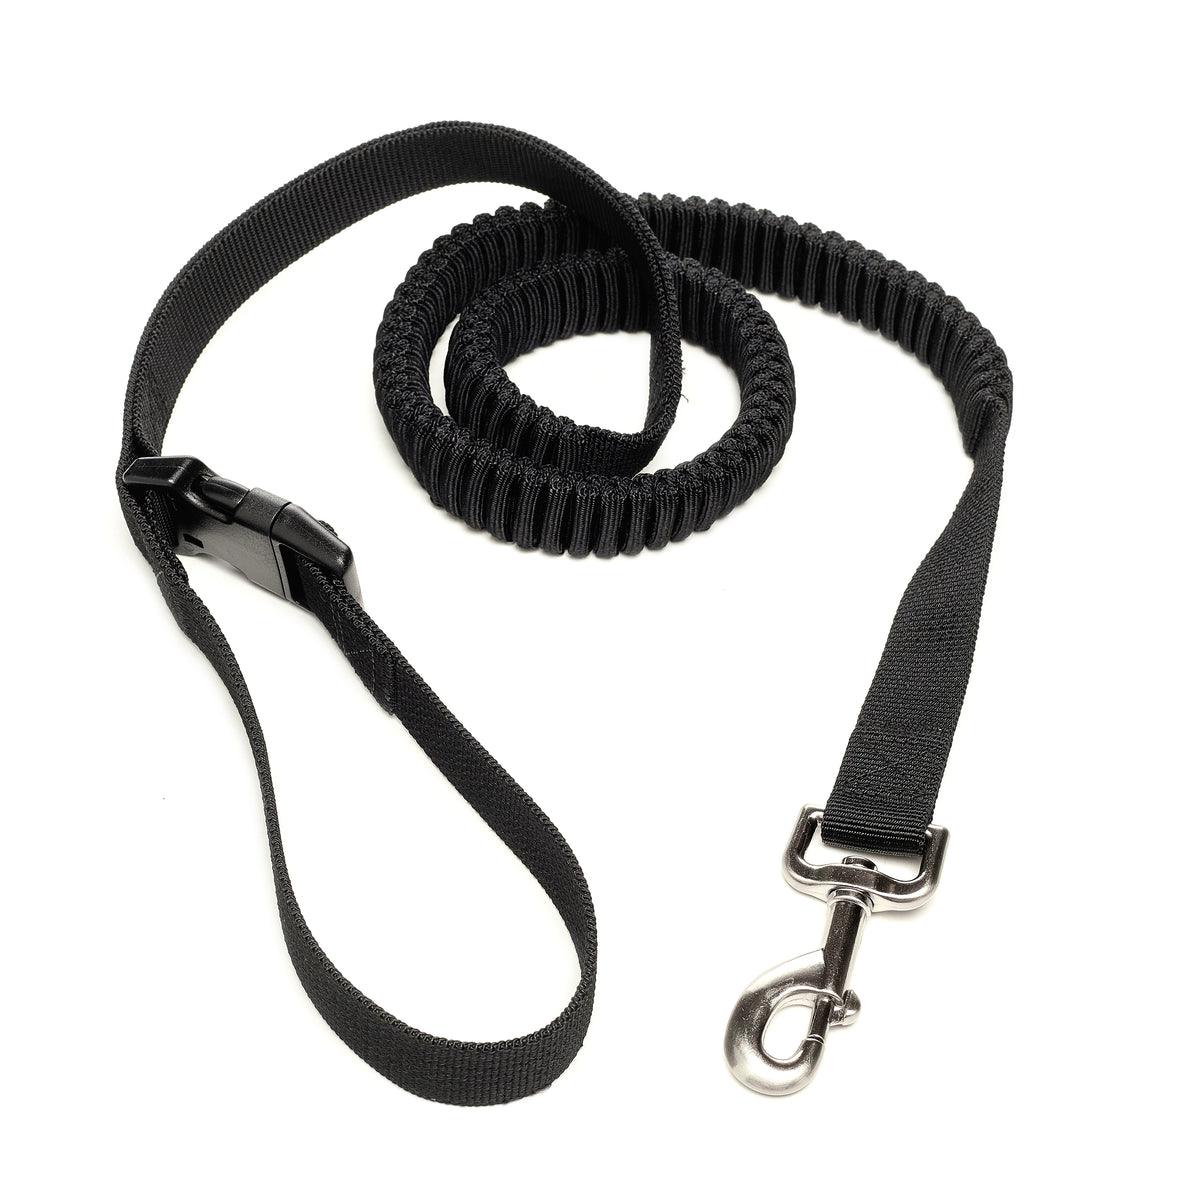 Hands Free Dog Leash with Pouch